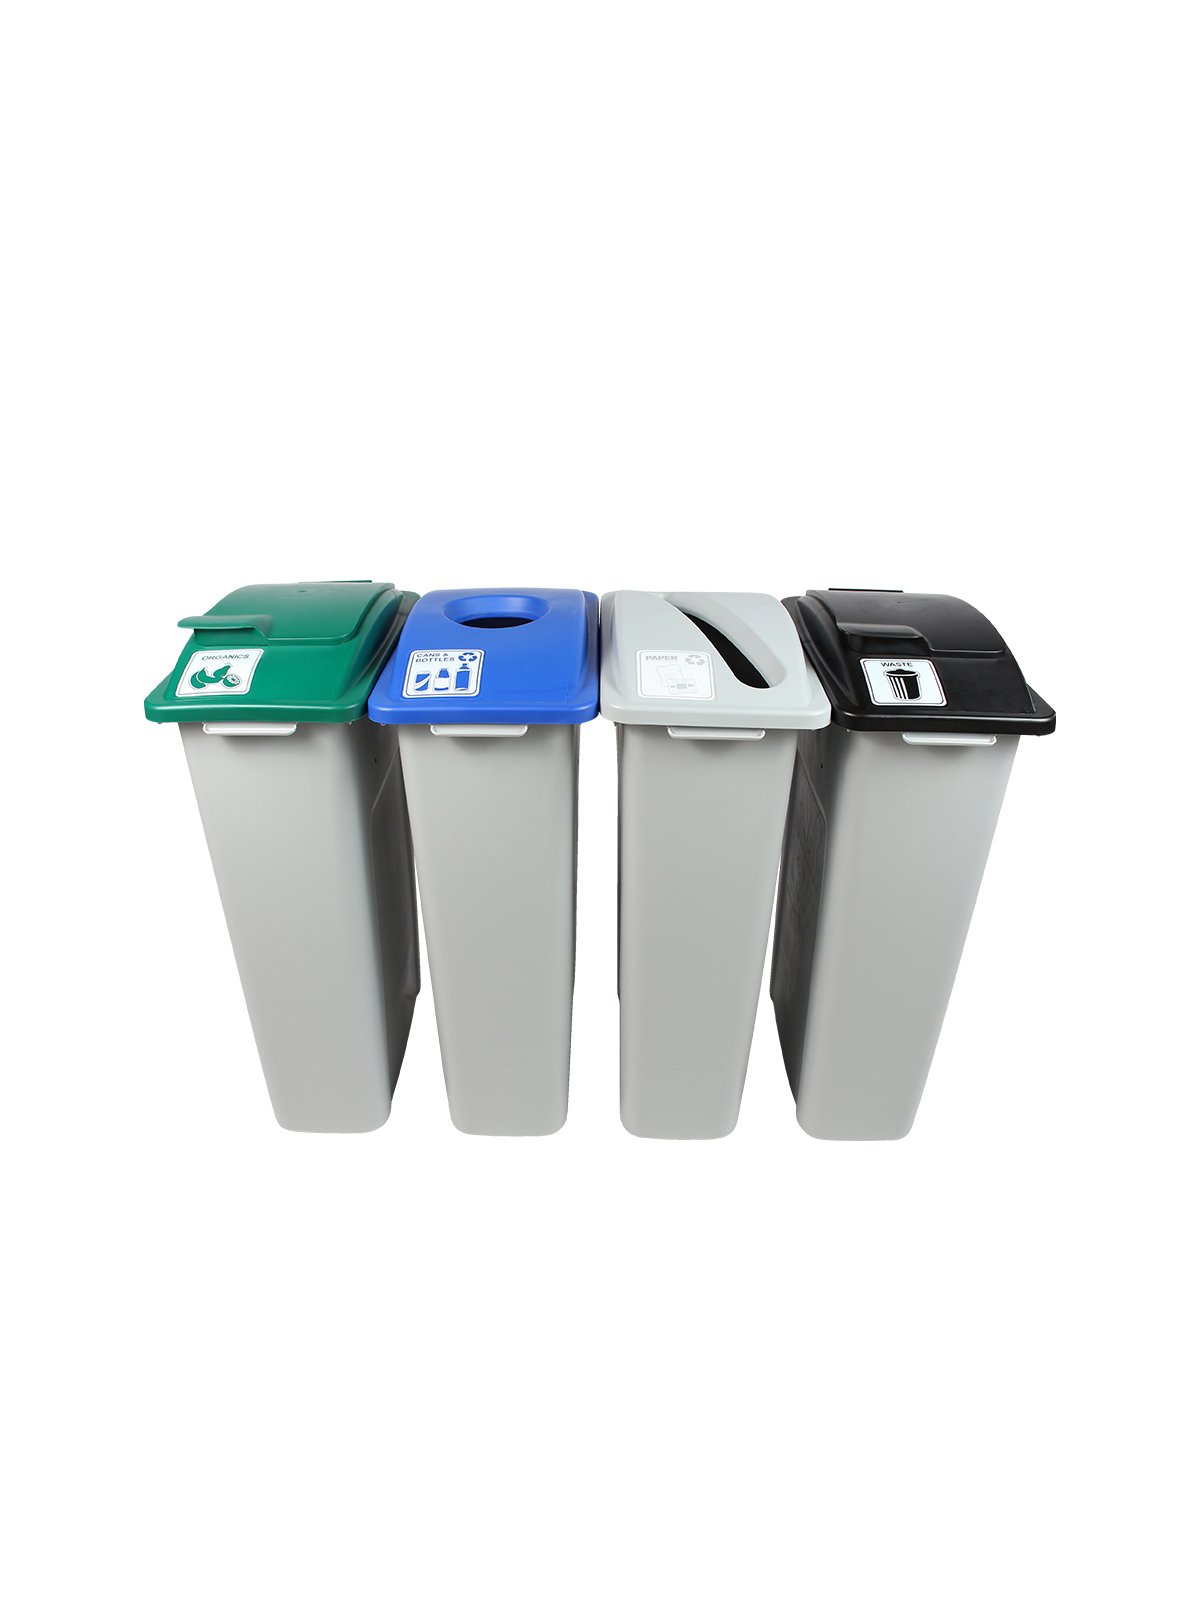 WASTE WATCHER - Quad - Cans & Bottles-Paper-Compost-Waste - Circle-Slot-Solid Lift-Solid Lift - Grey-Blue-Grey-Green-Black